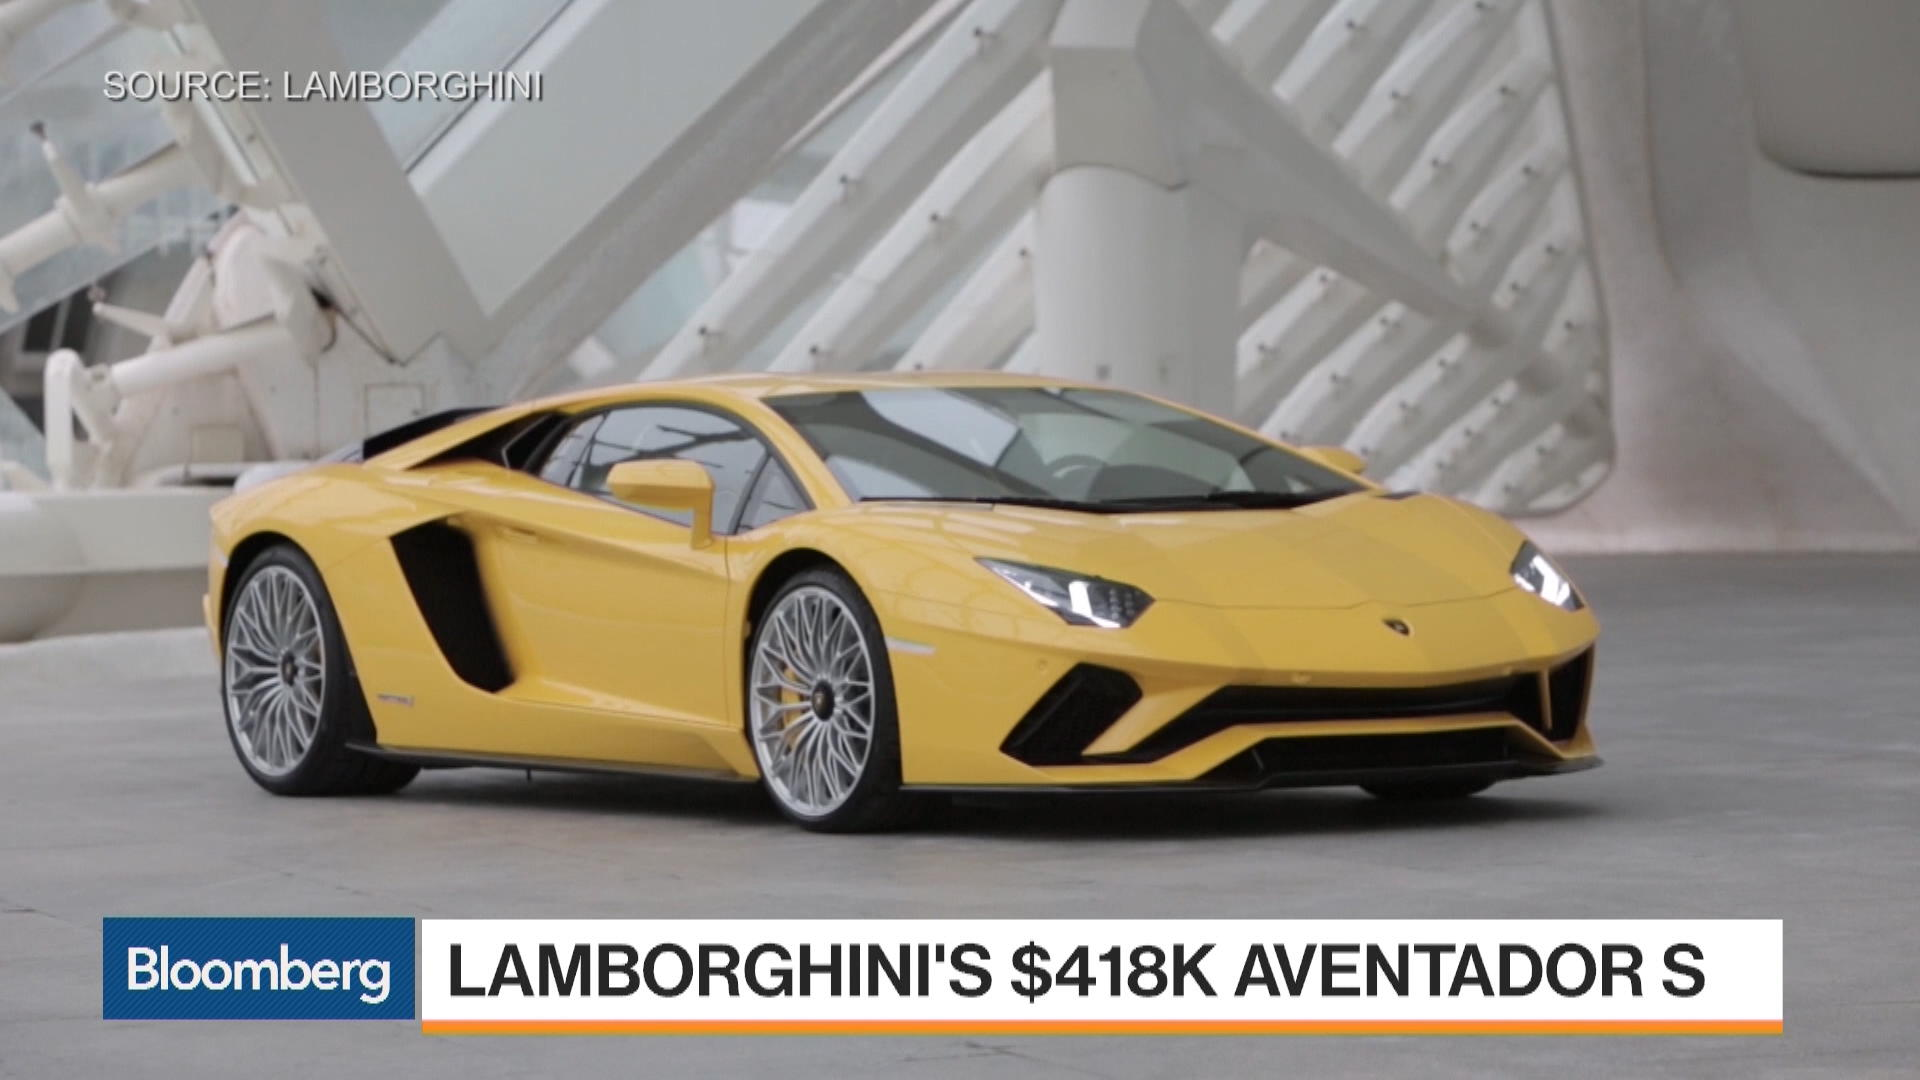 2018 lamborghini aventador s review track drive bloomberg. Black Bedroom Furniture Sets. Home Design Ideas